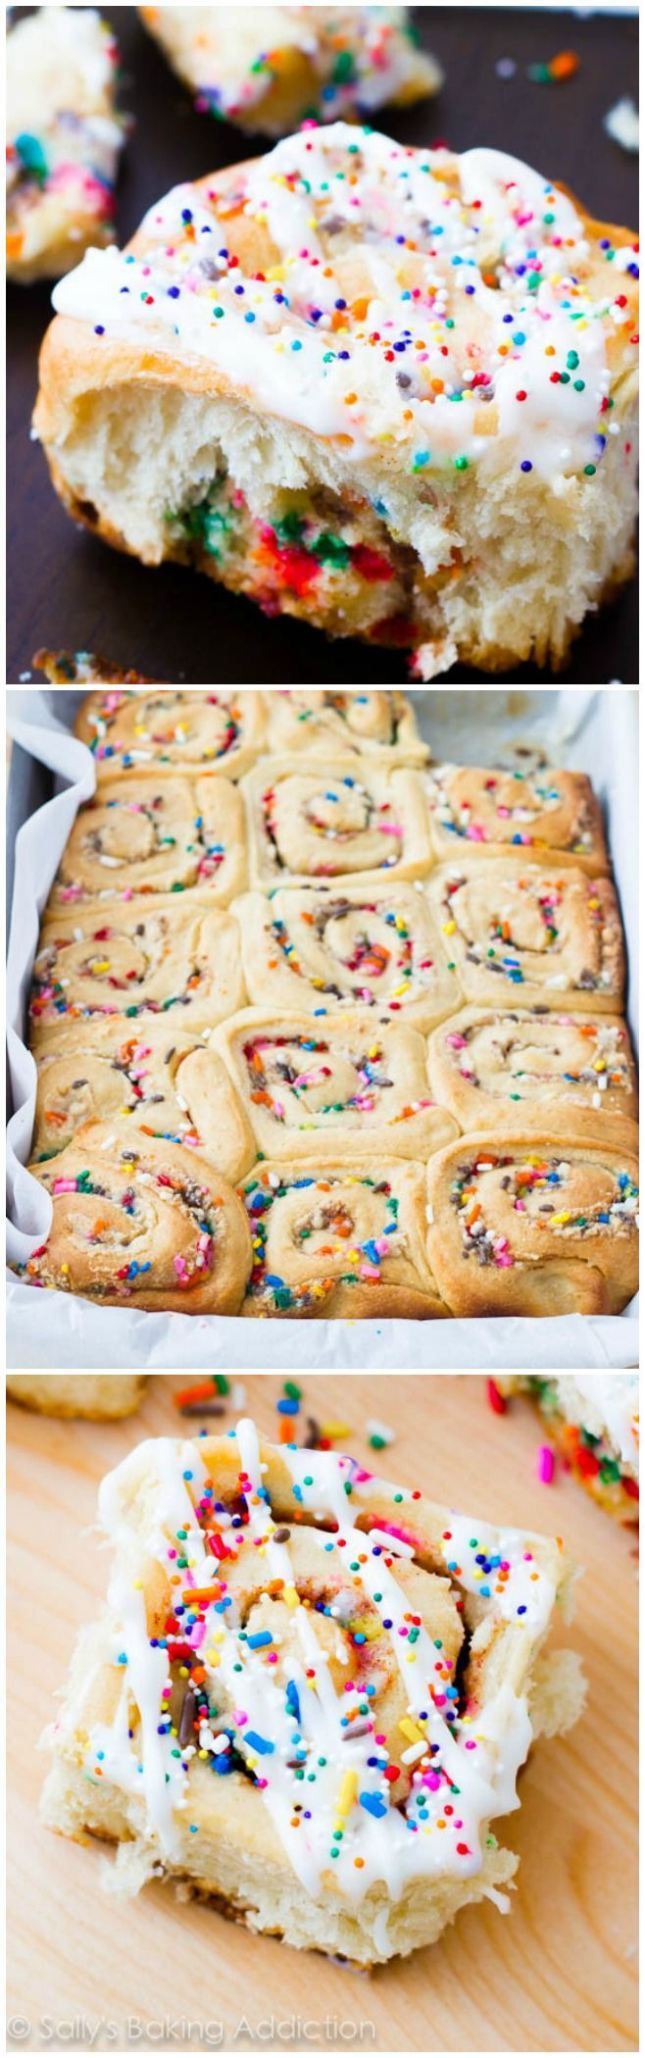 Cake Batter Cinnamon Rolls...yumm, but probably terrible for you